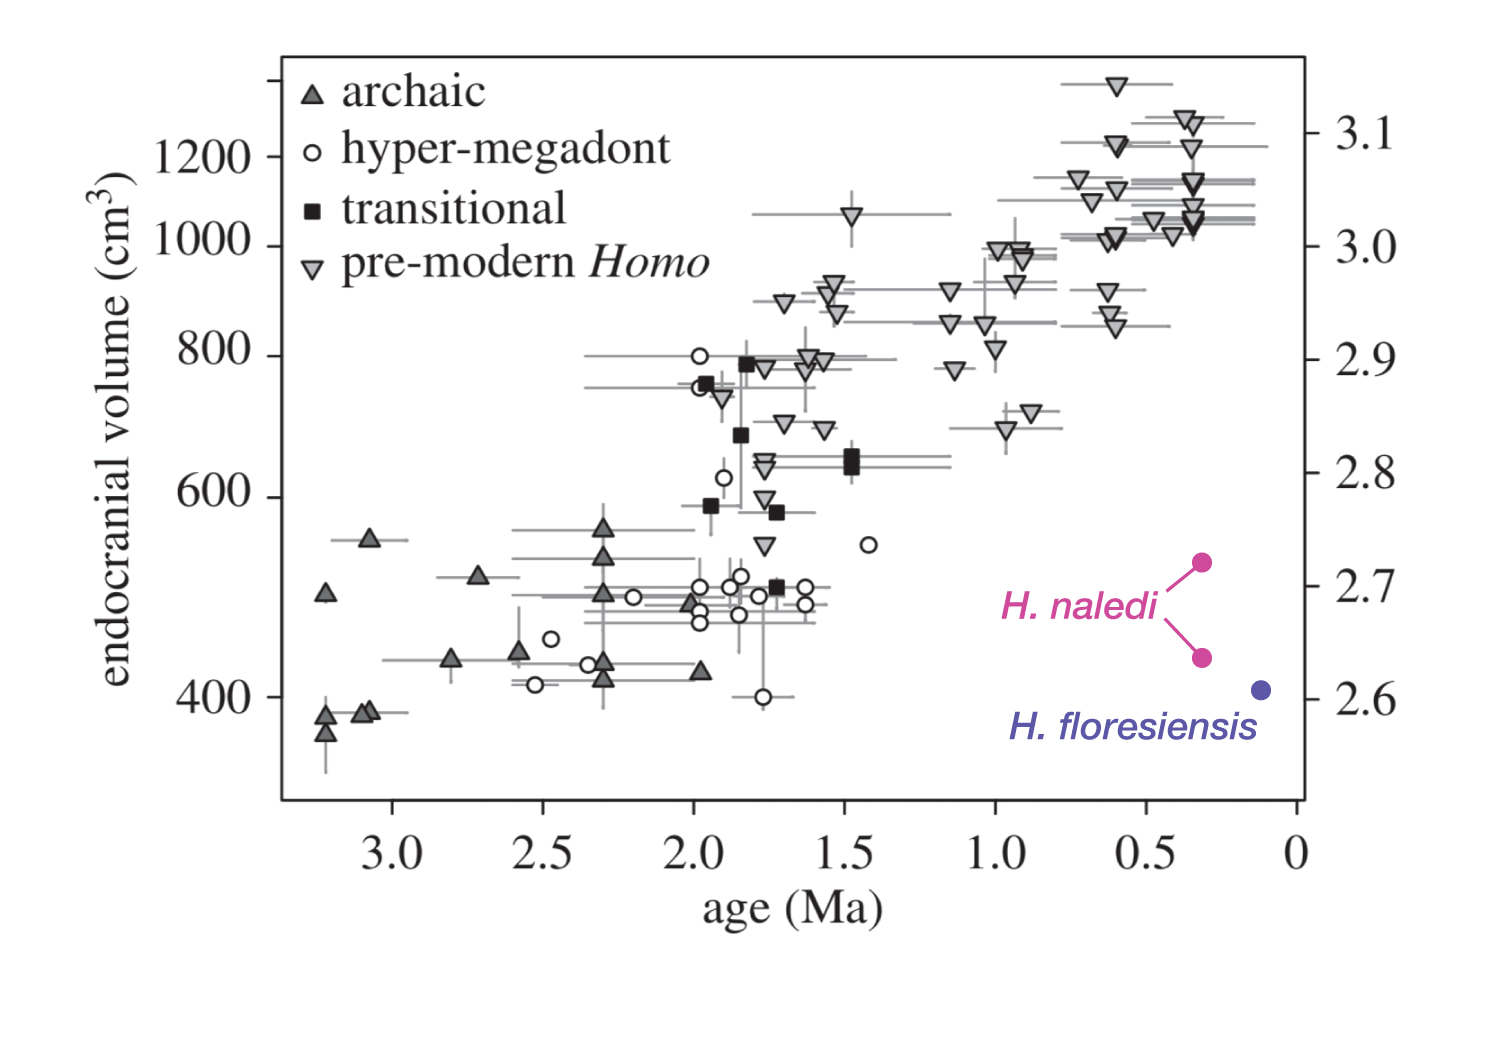 Same figure as above with hominin endocranial volume data, but this time with Homo naledi and Homo floresiensis added